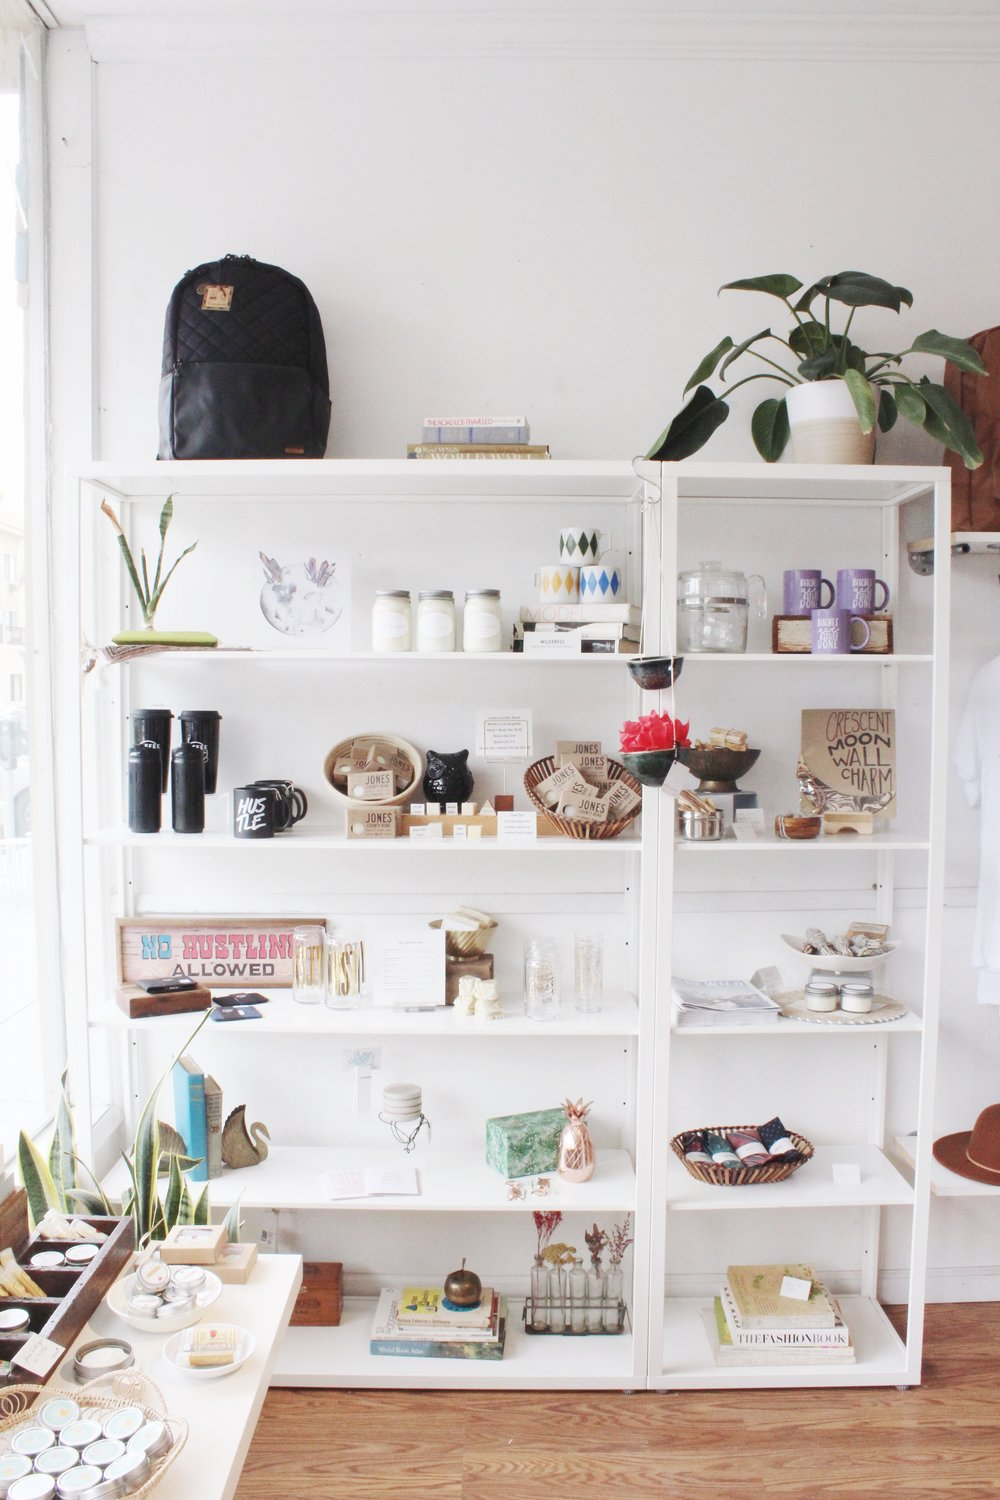 Maker of the Month | Make Collective | Found + Kept